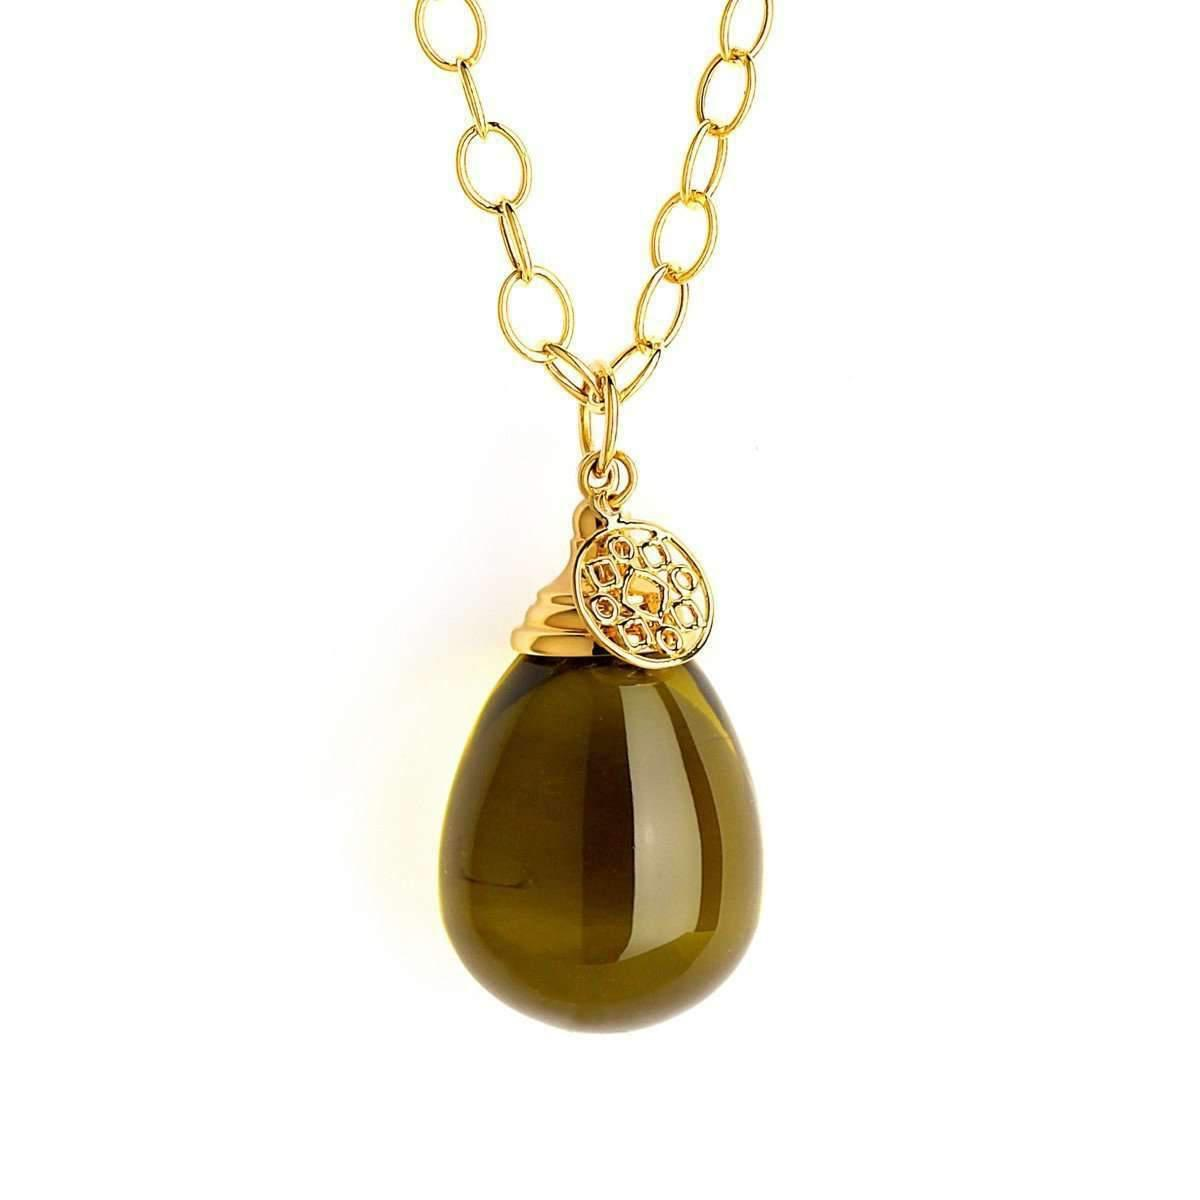 Syna 18kt Citrine Drop Necklace M2XXOs2u